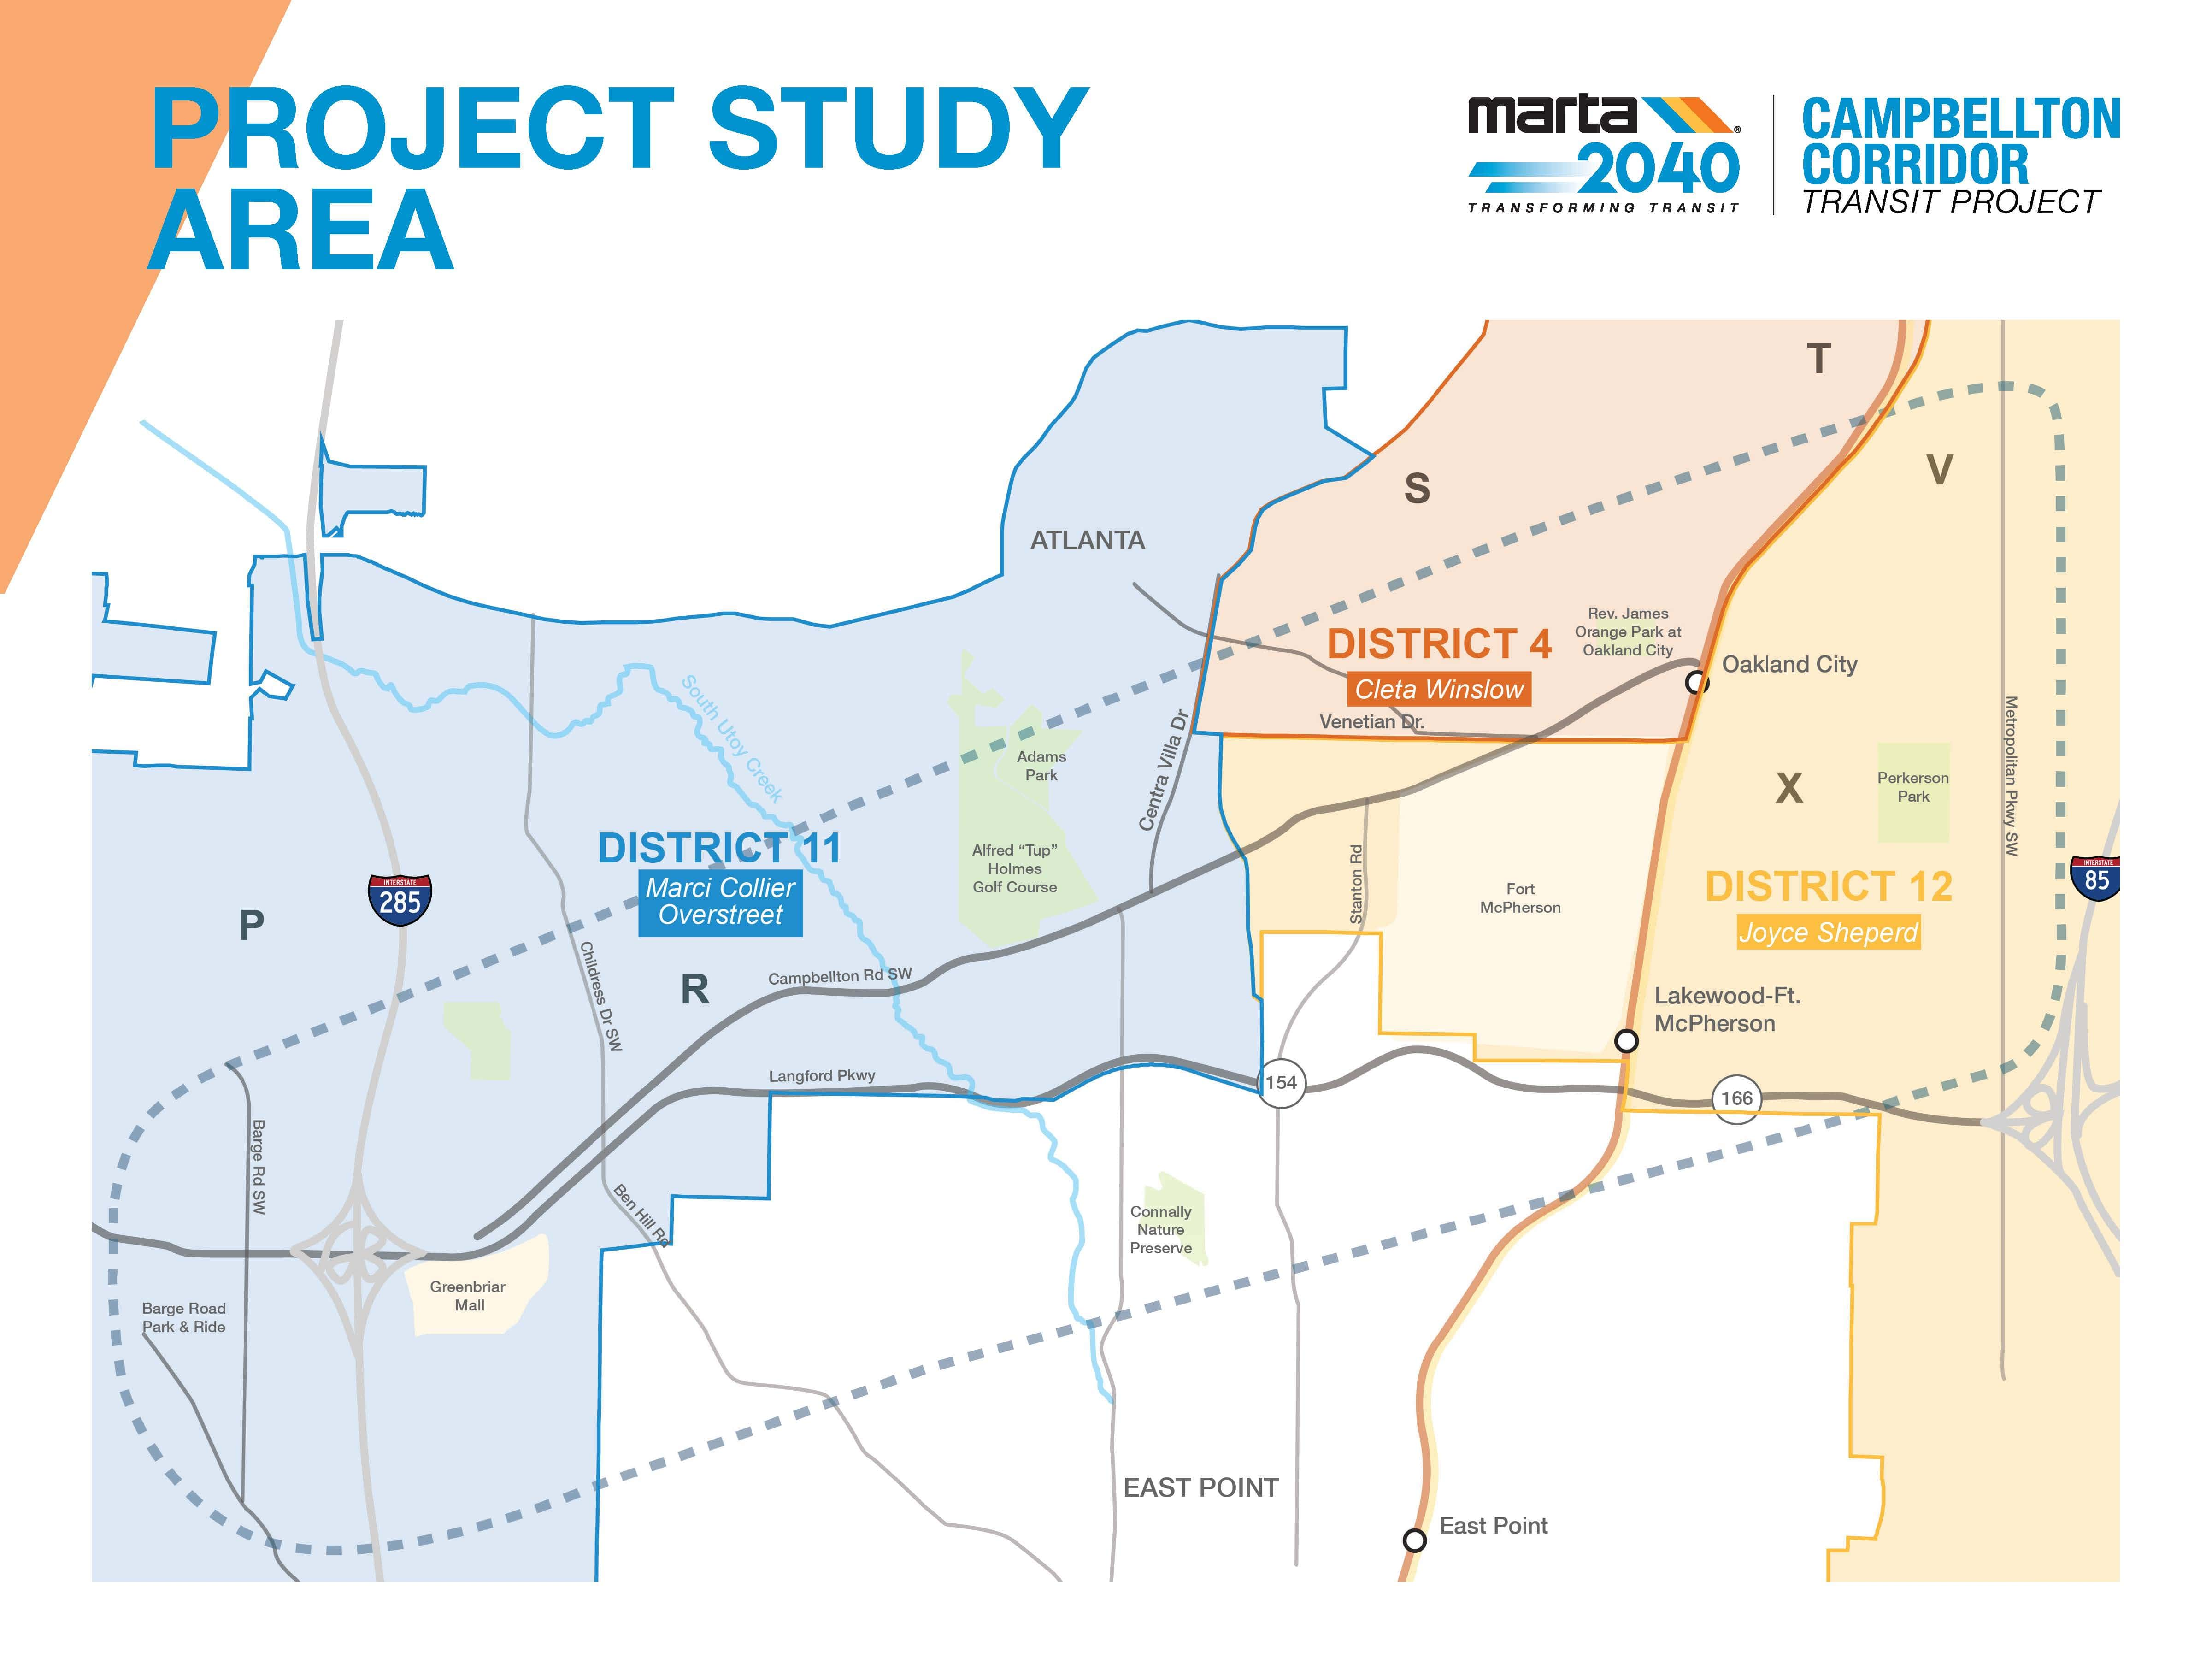 Campbellton Corridor Map Project Study Area- Minimized